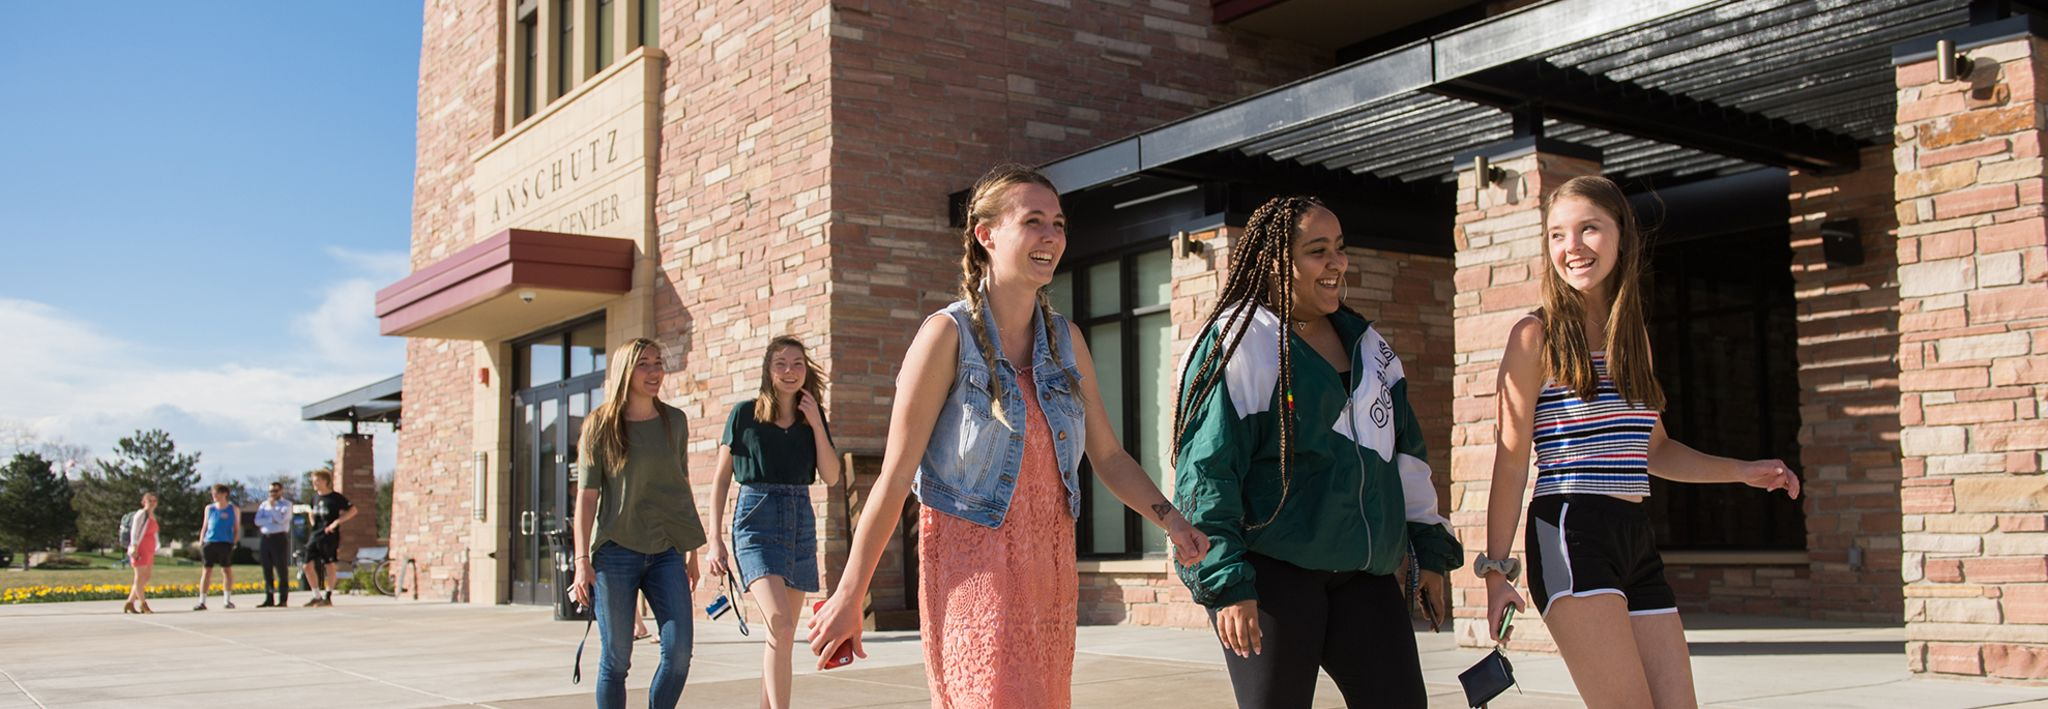 A group of female students are walking around the CCU campus.